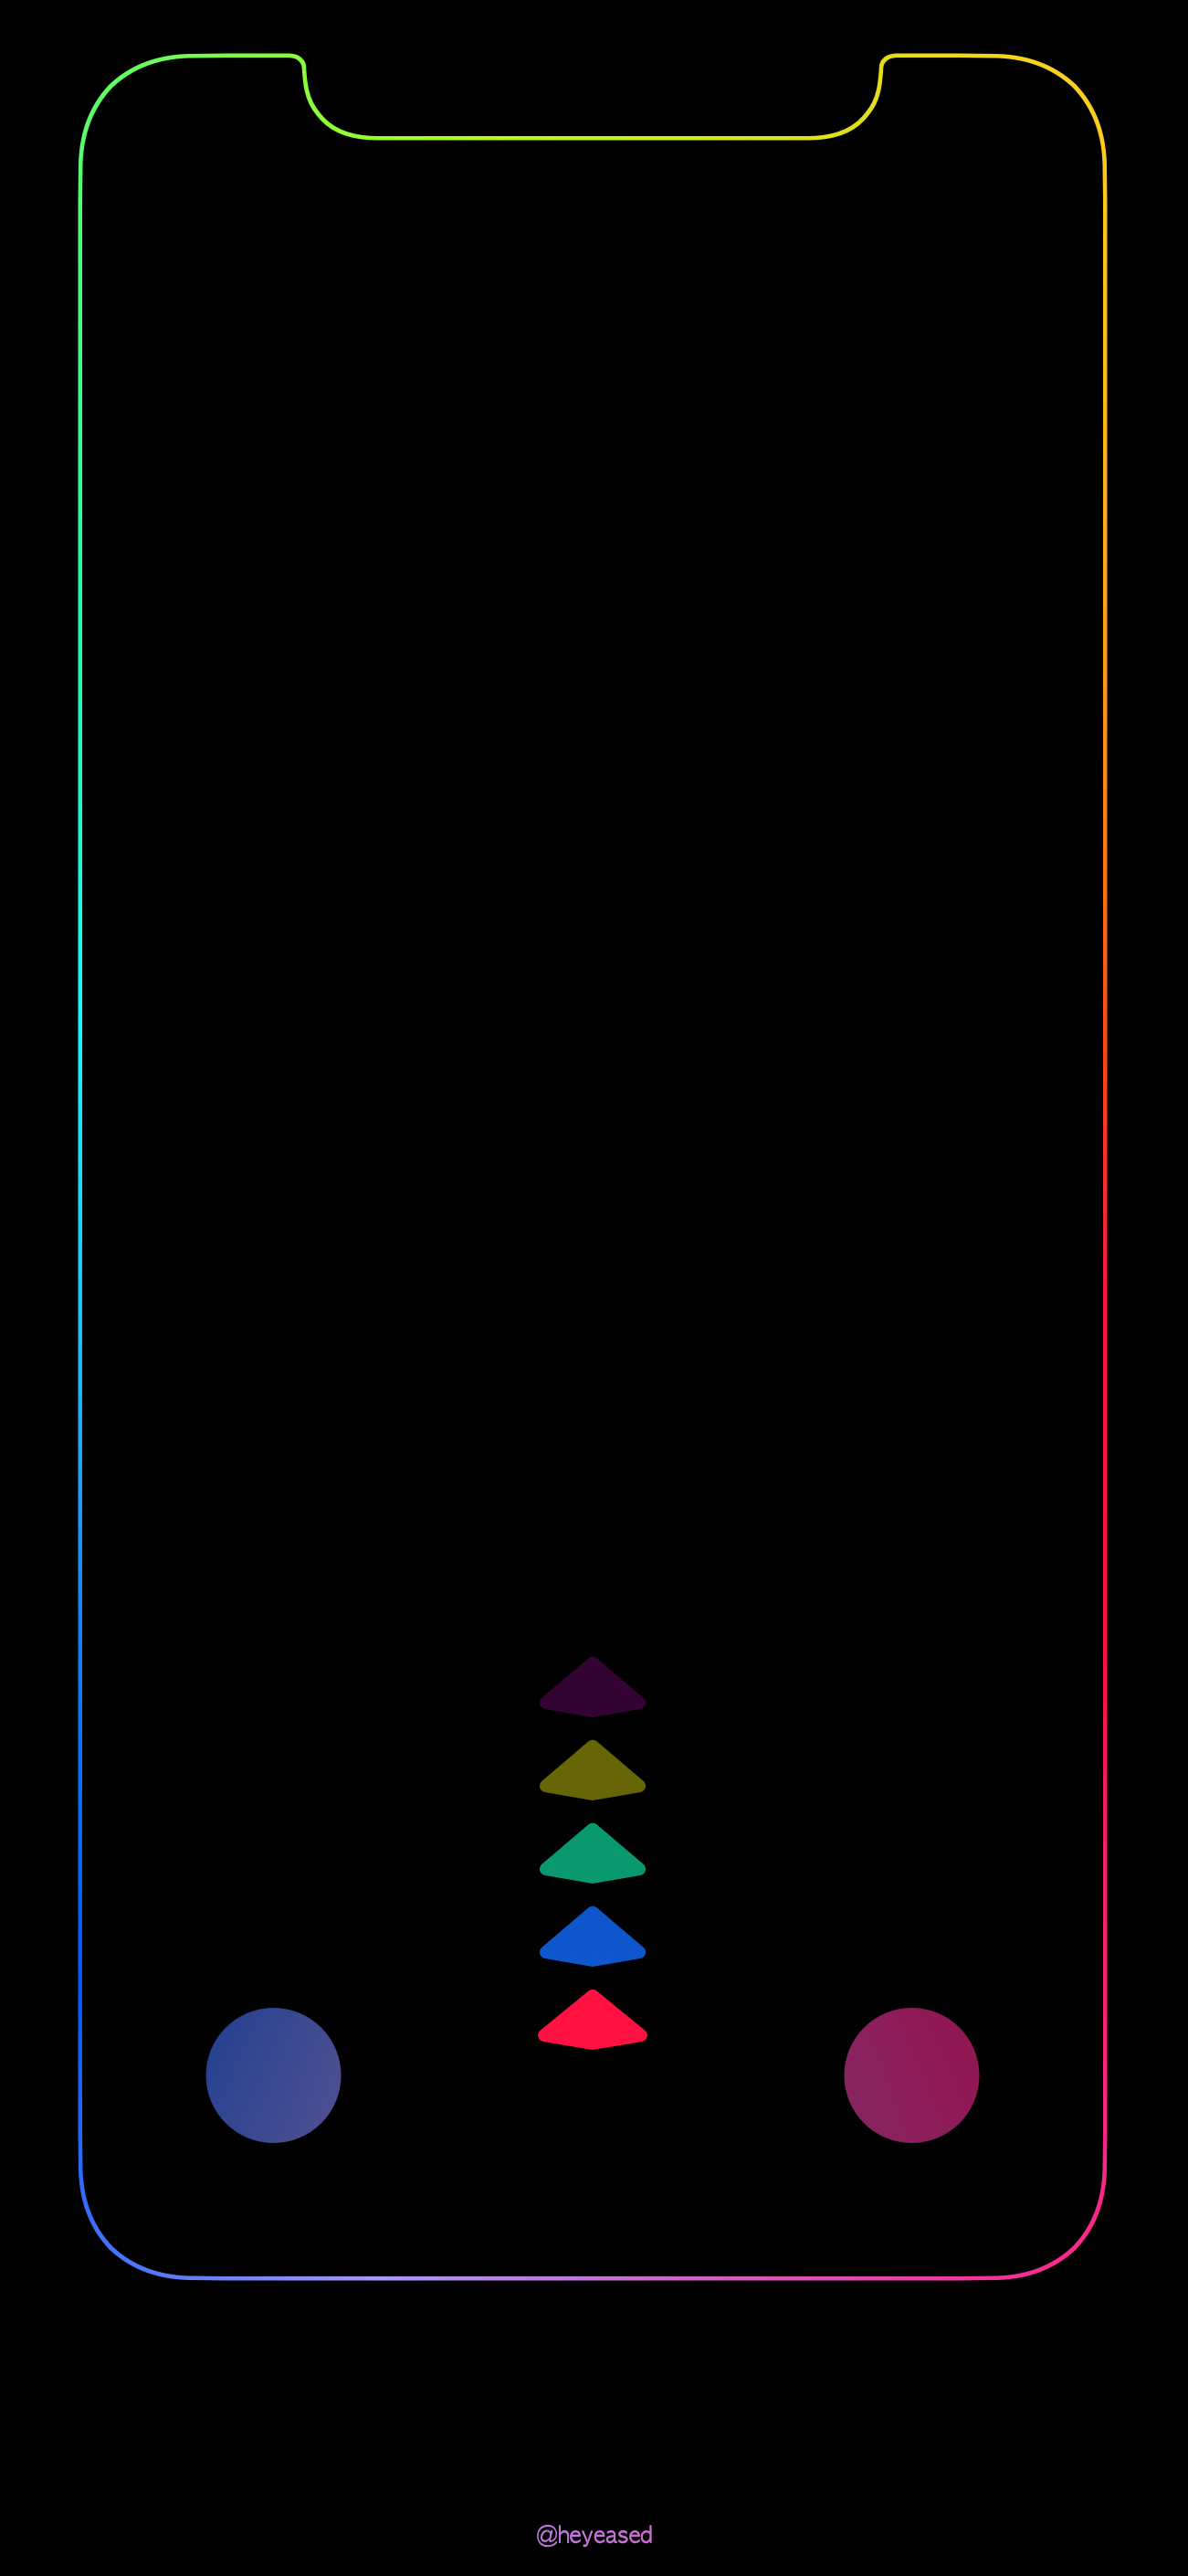 Xの壁紙 カラードック The X Color Dock Mysterious Iphone Wallpaper